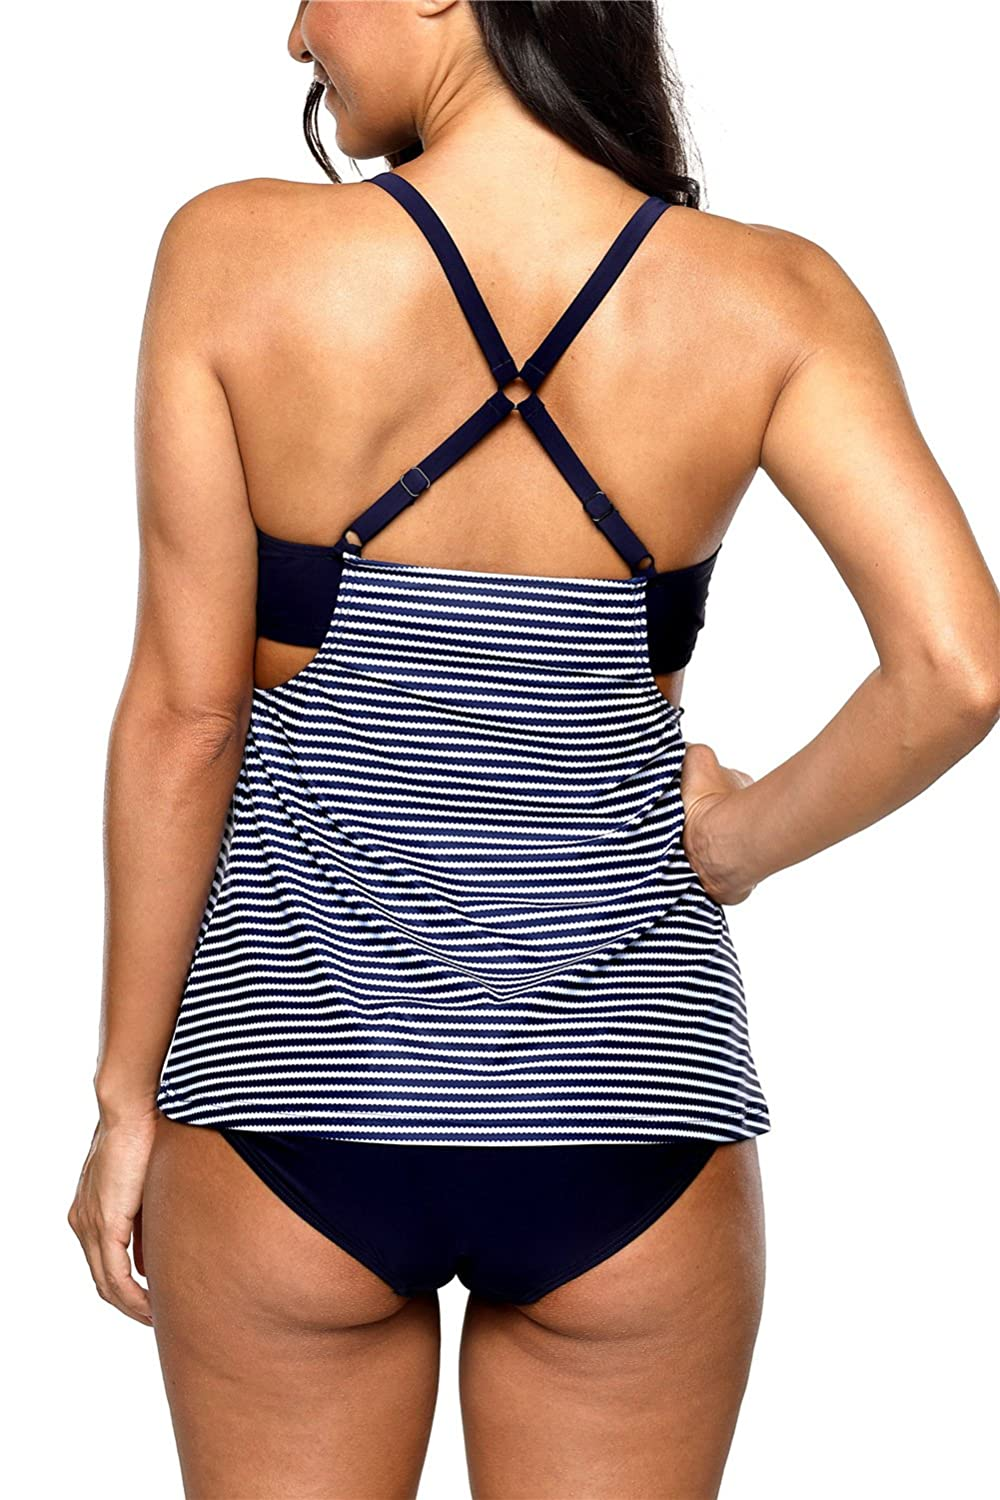 maysoul Women Striped Tankini Set with Brief Cross Back Padded Two Piece Swimsuit